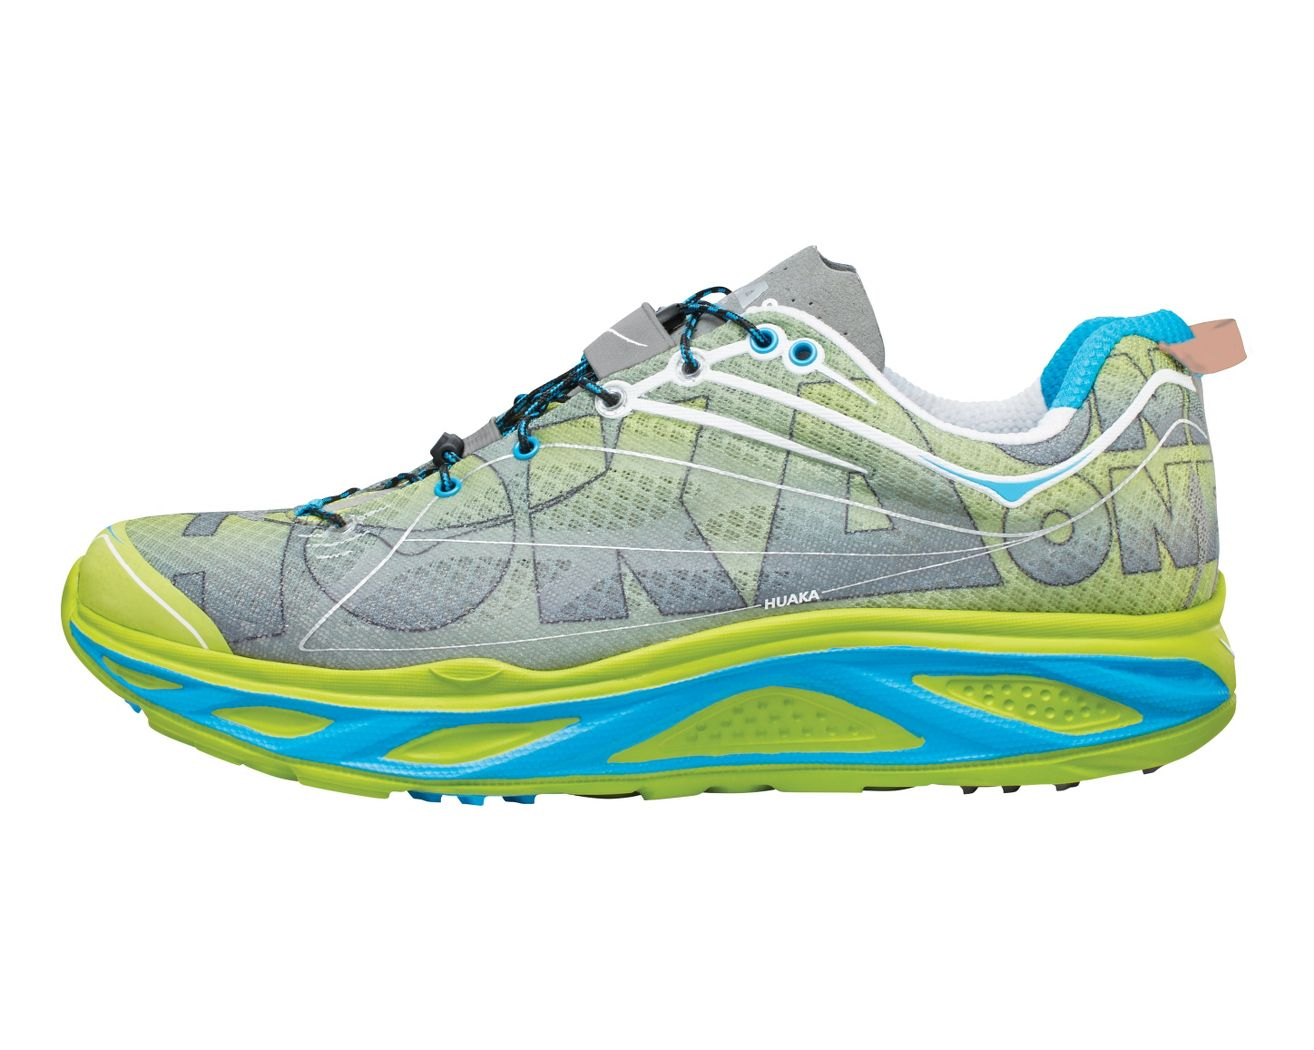 Hoka Huaka Womens Running Shoes R17k3940